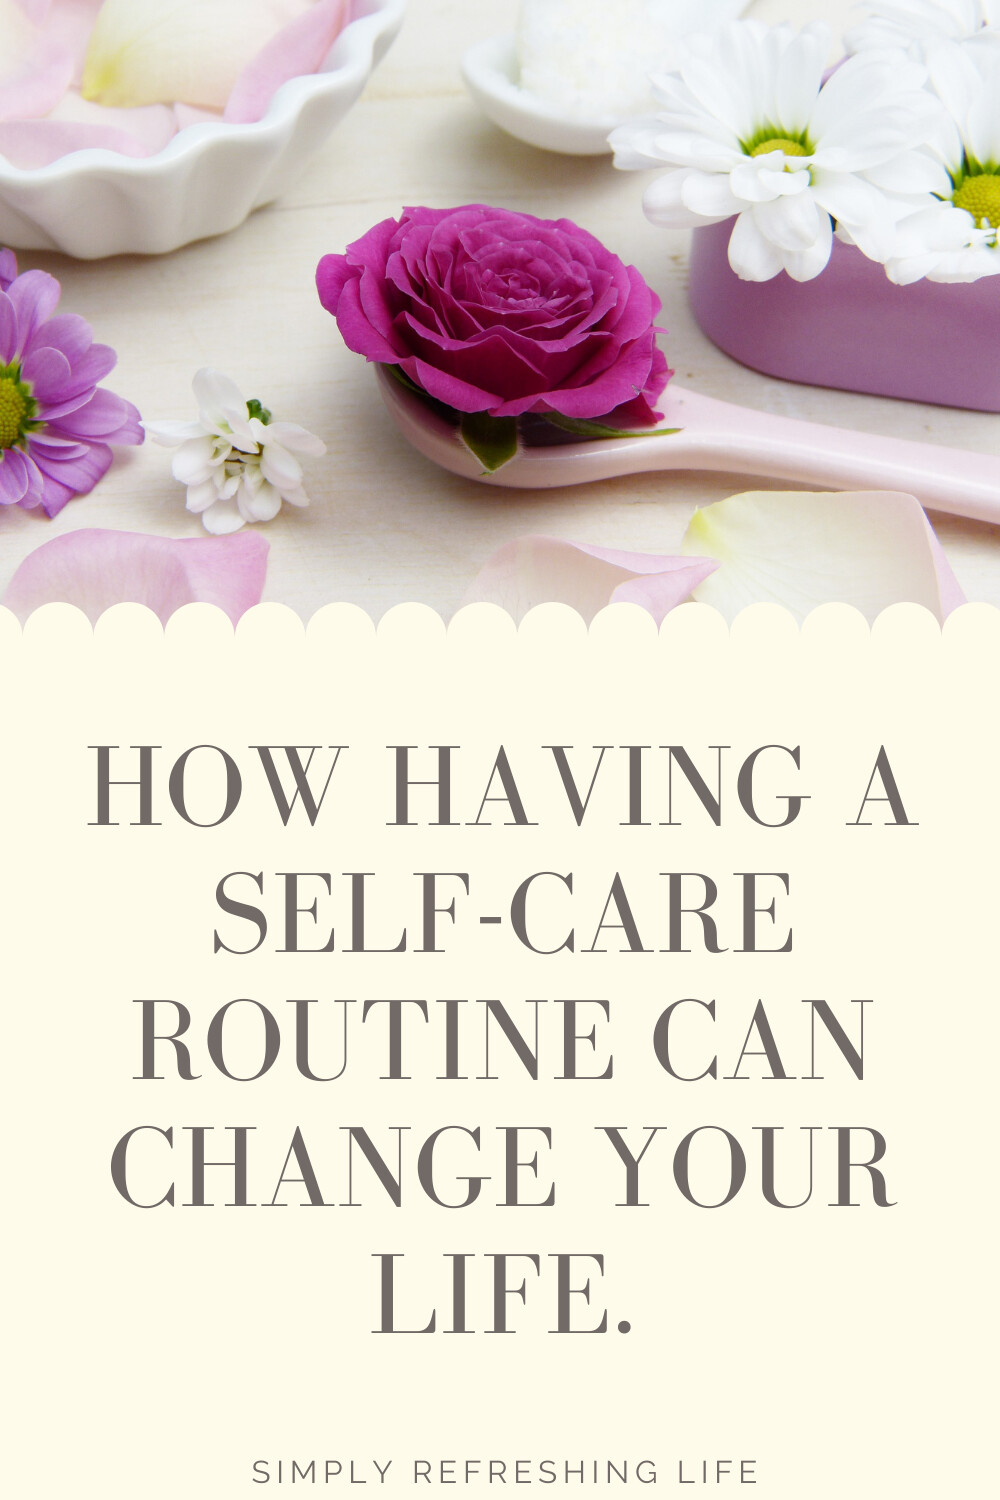 How Having a Self-Care Routine can Change your Life